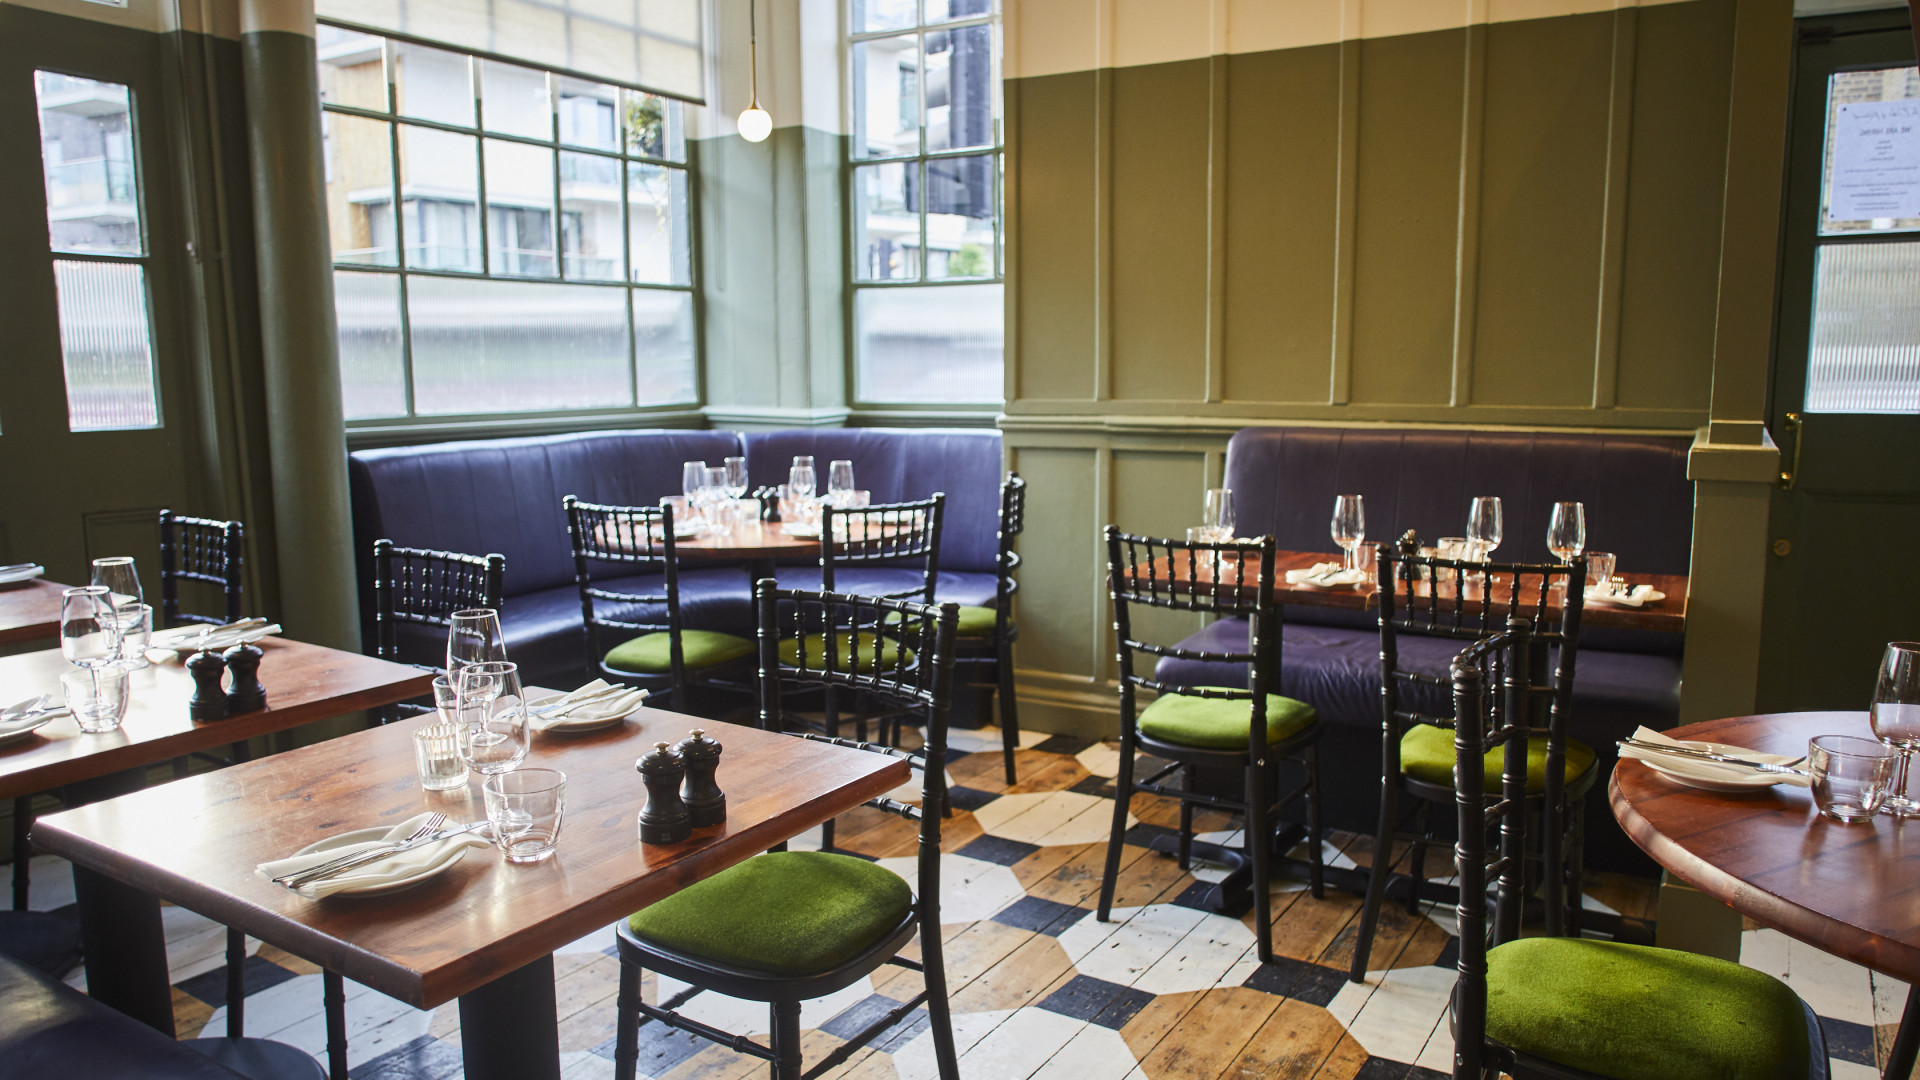 The dining room at The Duke of Richmond in Hackney